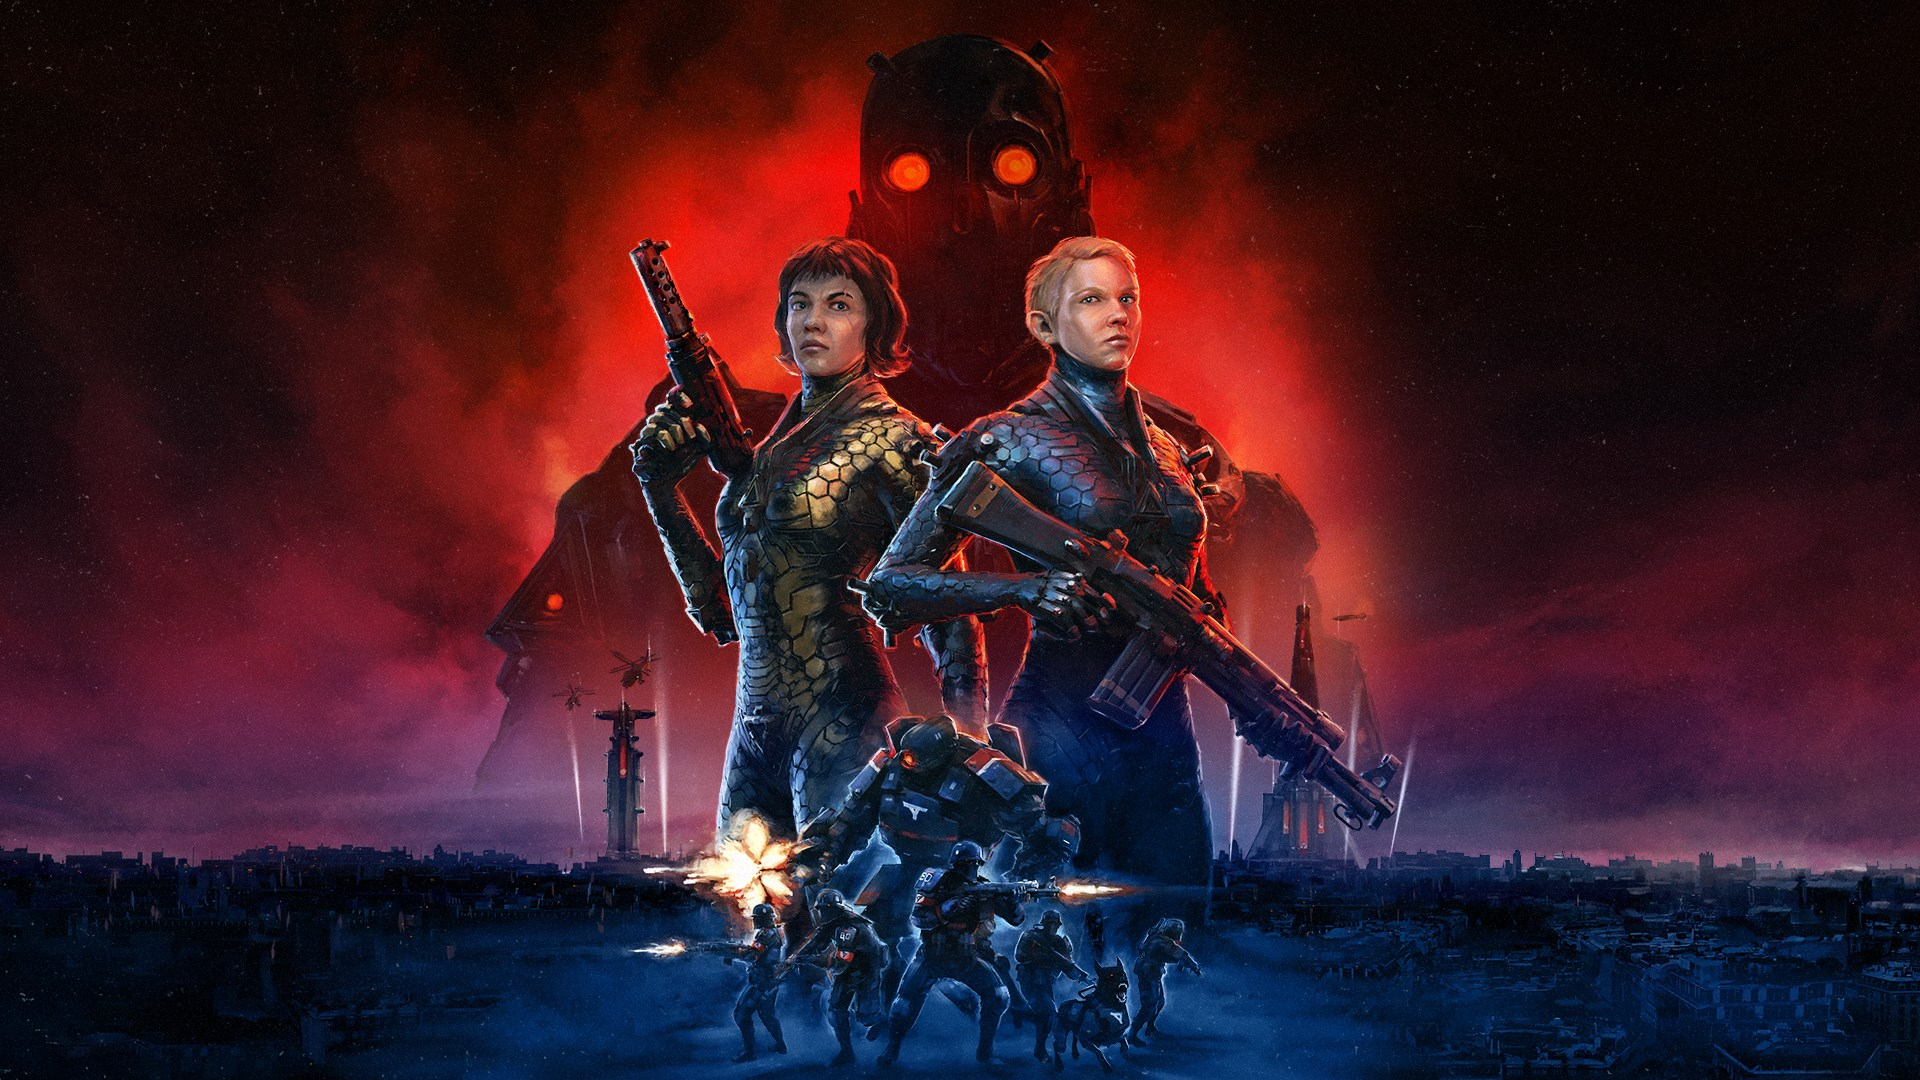 Buy Wolfenstein: Youngblood Deluxe Edition - Microsoft Store